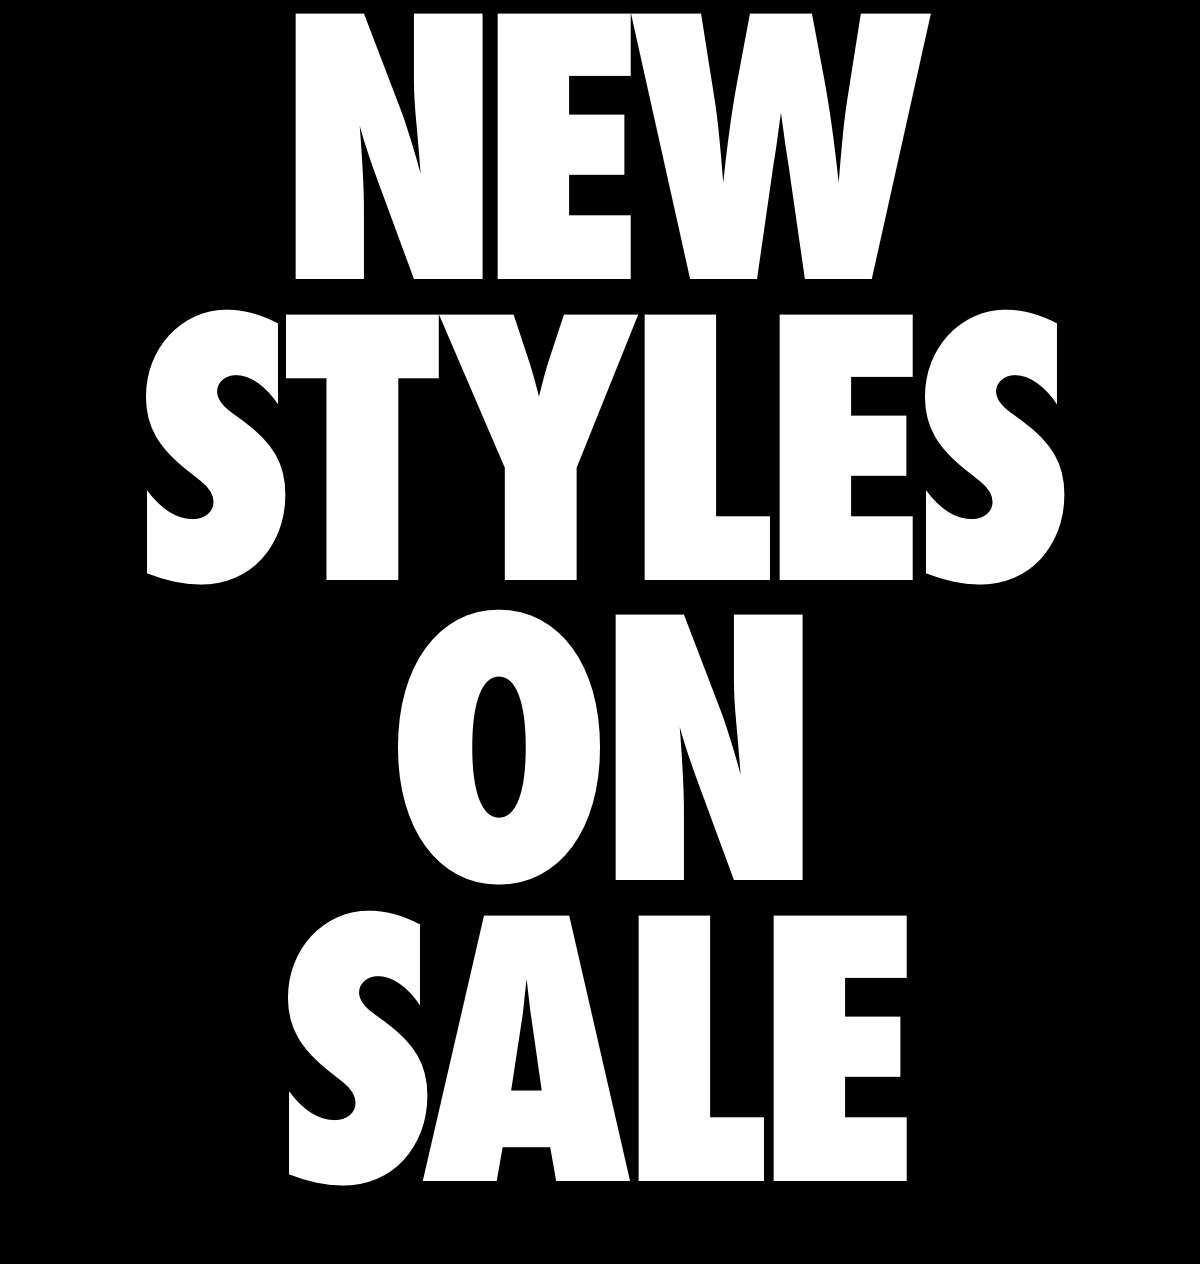 NEW STYLES ON SALE